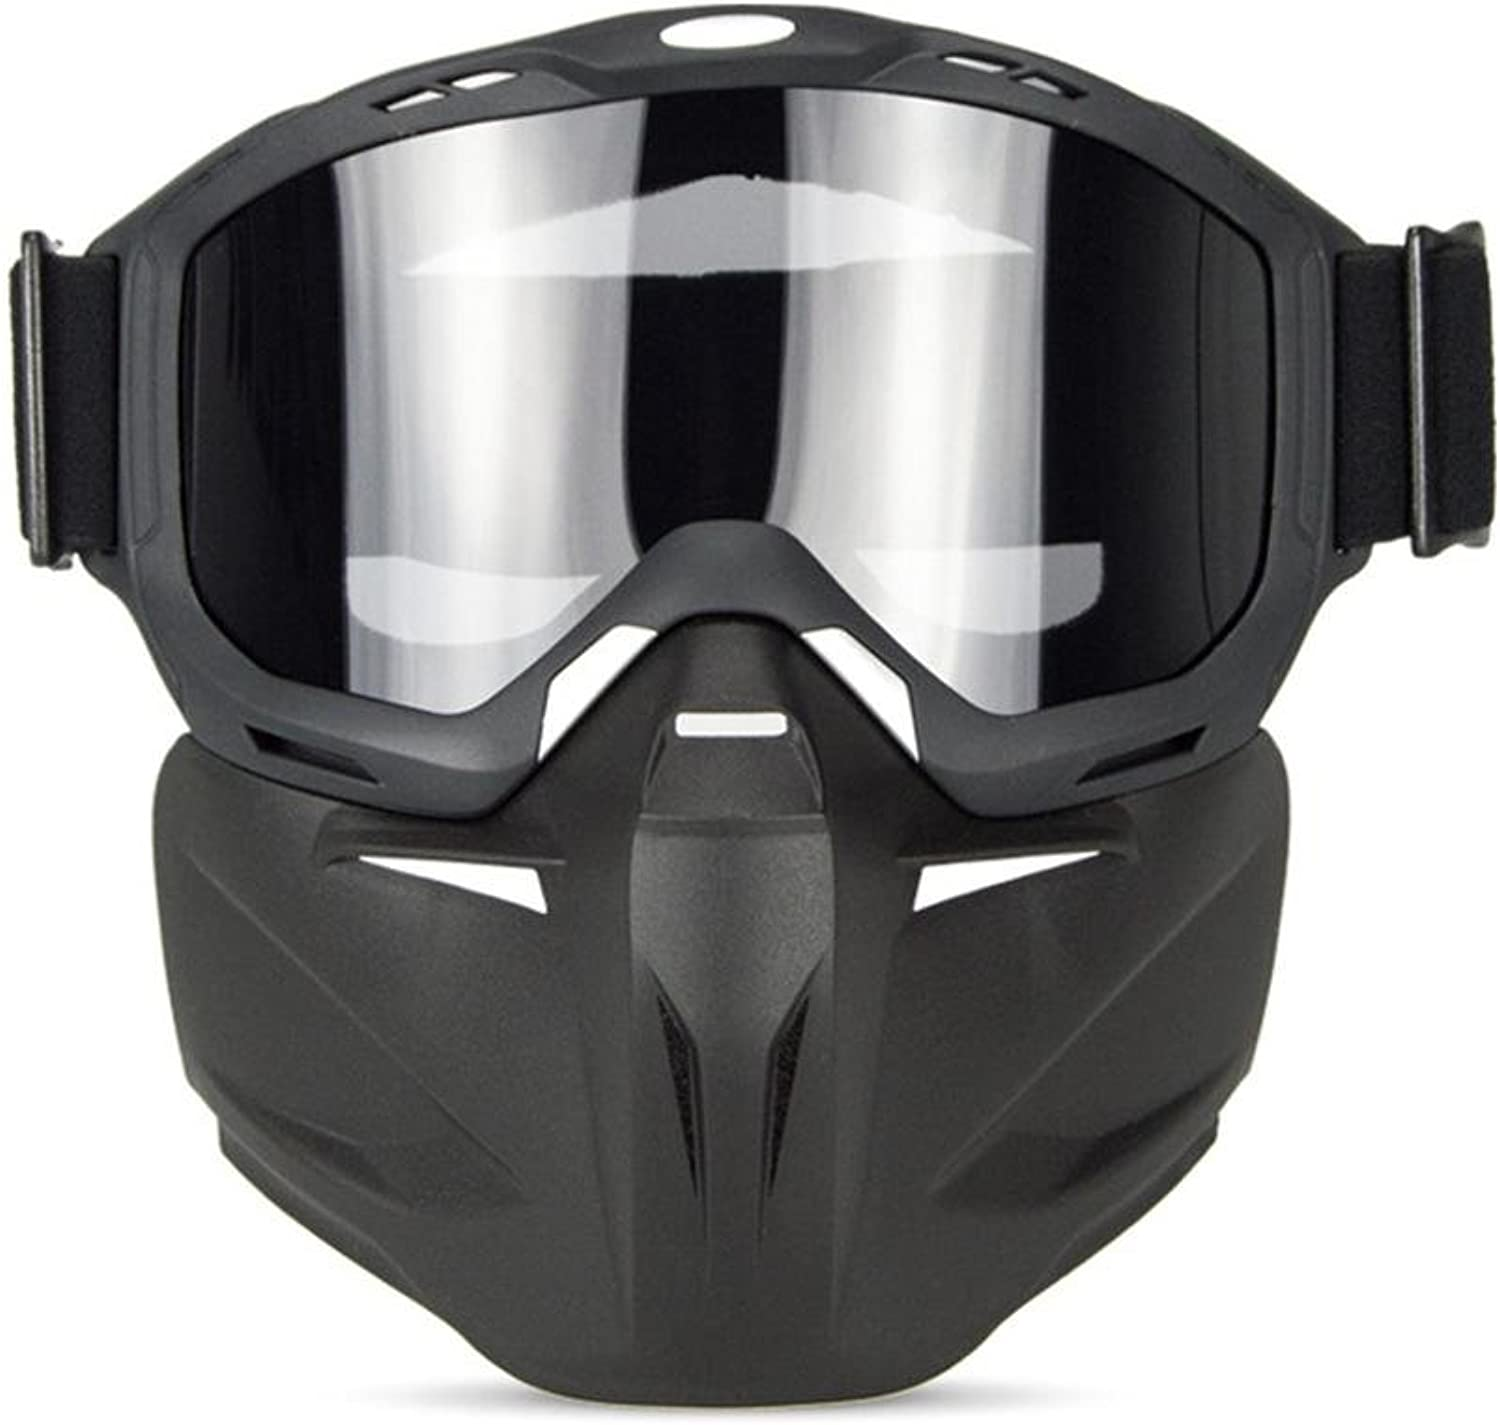 Outdoor Sports Anti-UV Glasses Multifunctional Knight Mask Goggles Cross-Country Anti-Impact Lightweight Motorcycle Glasses for Riding and Climbing